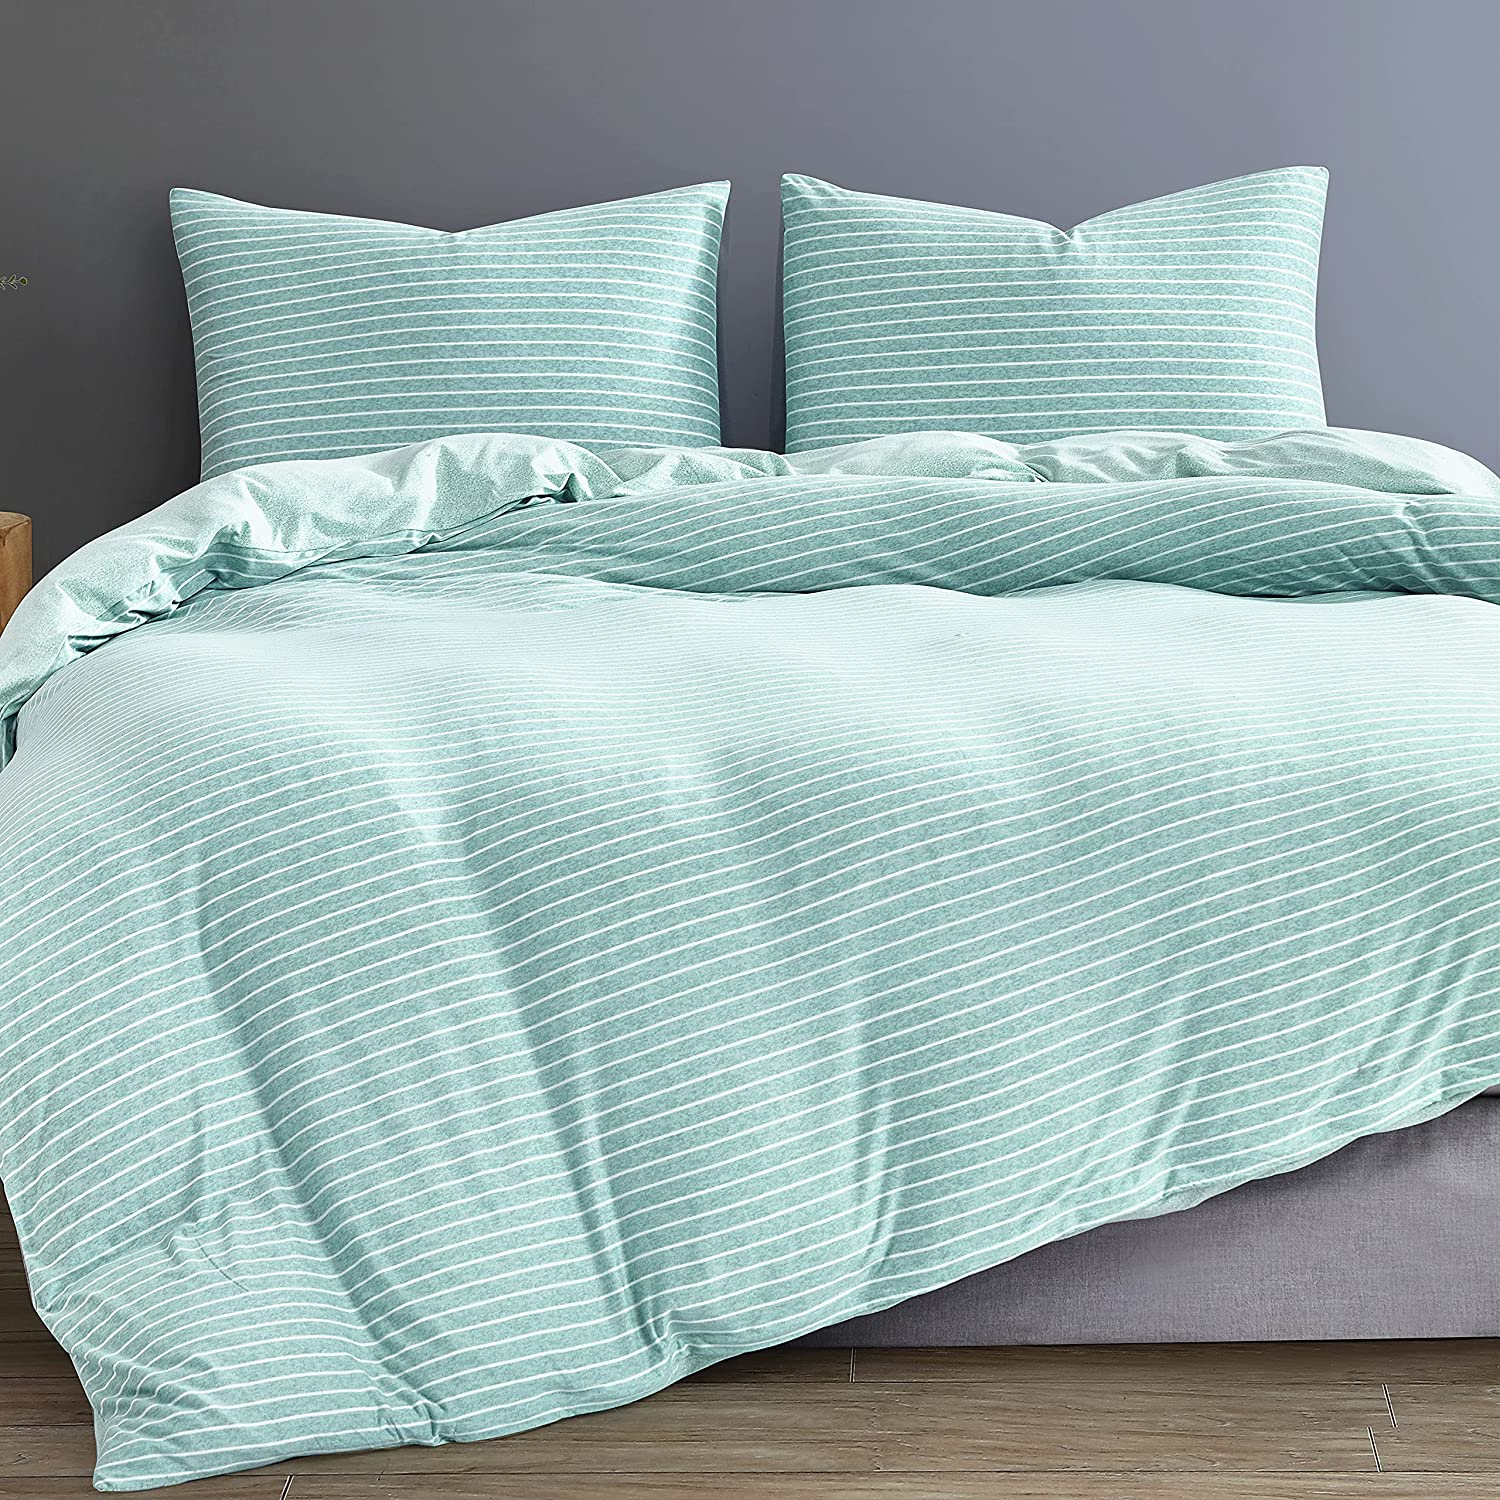 MELINGO Max 63% OFF Queen Duvet Cover Striped 3 Knit Pieces Max 73% OFF Jersey Zip with